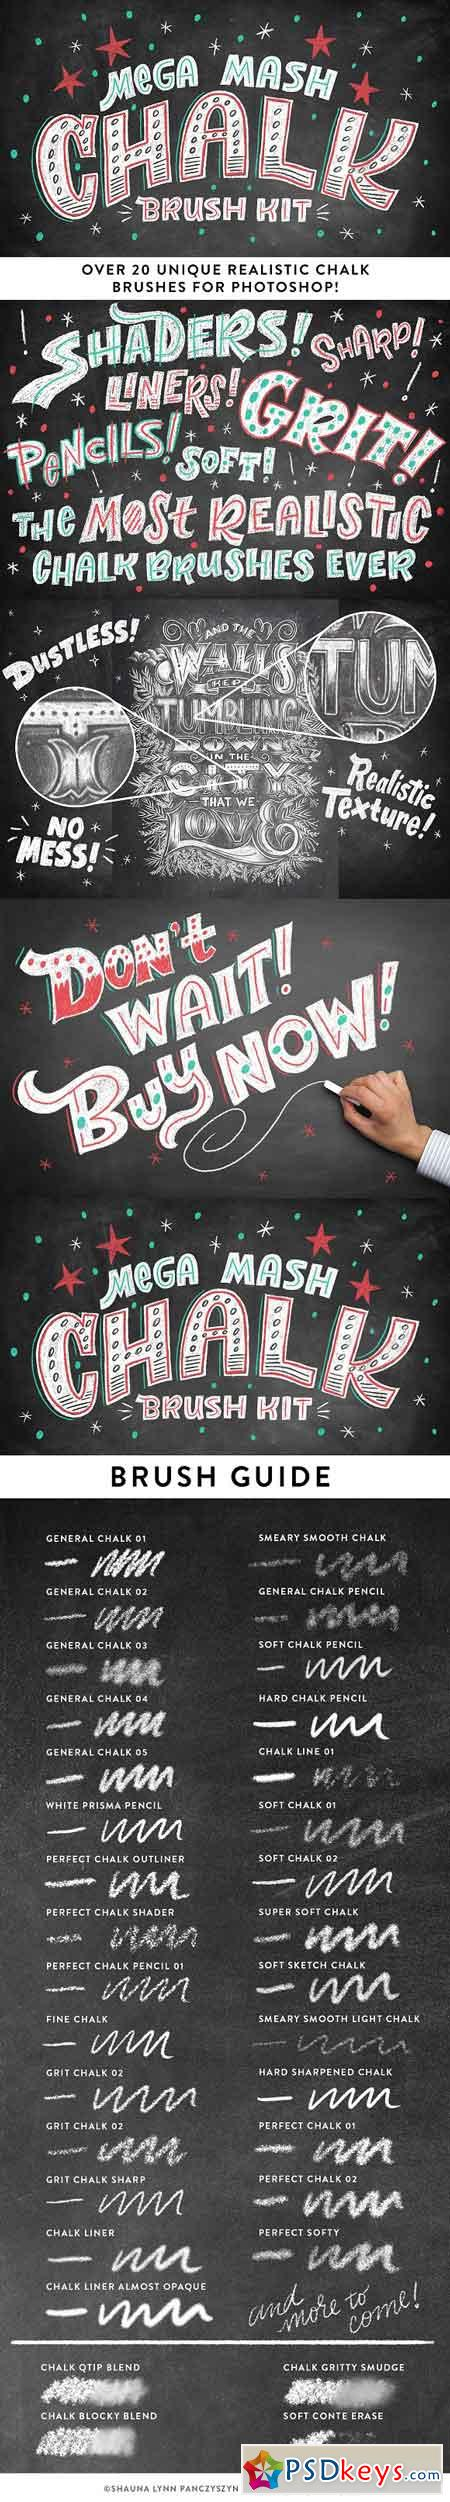 Mega Mash Chalk Brush Kit 1146691